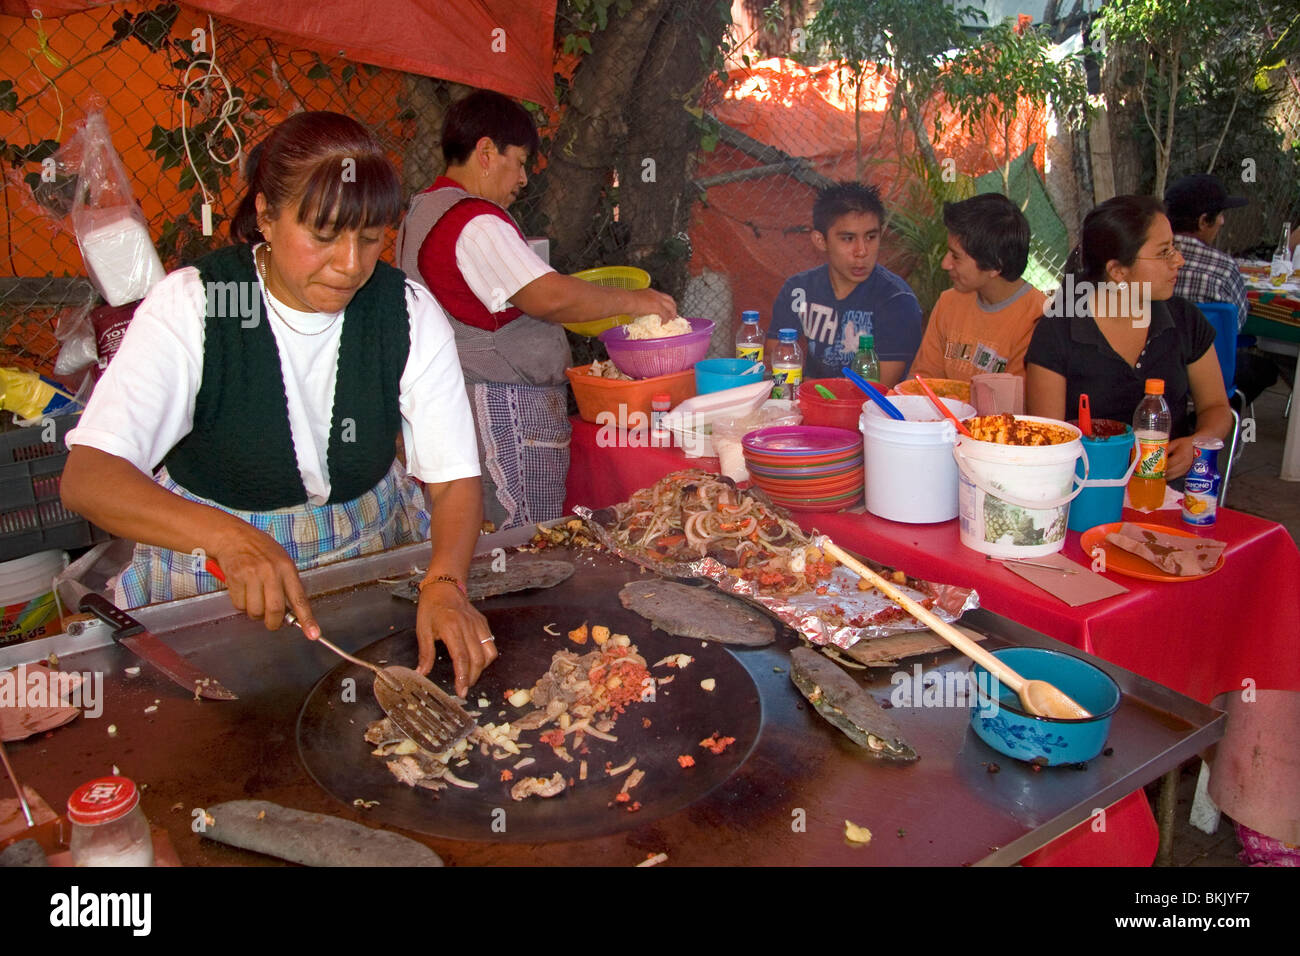 Food vendor along the Xochimilco canals within Mexico City, Mexico. - Stock Image